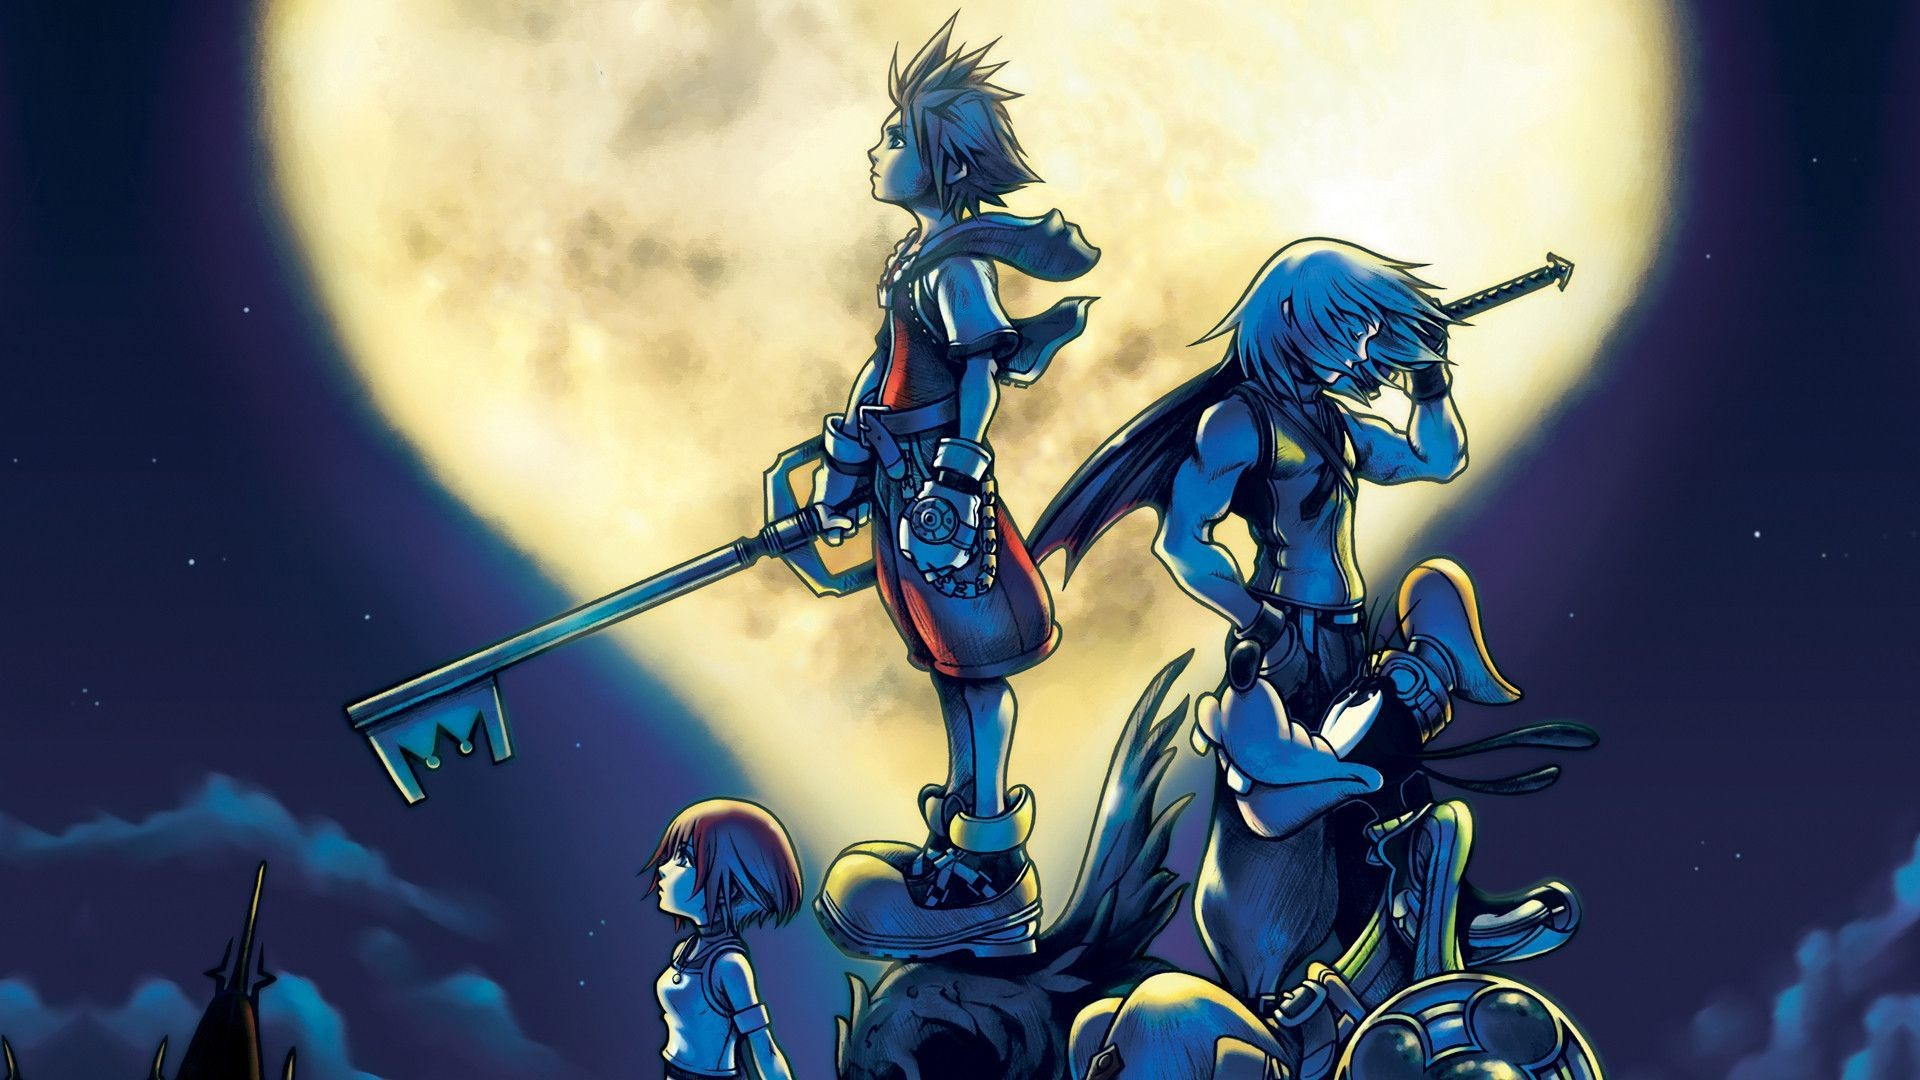 1920x1080 ... kingdom hearts wallpaper free download ...